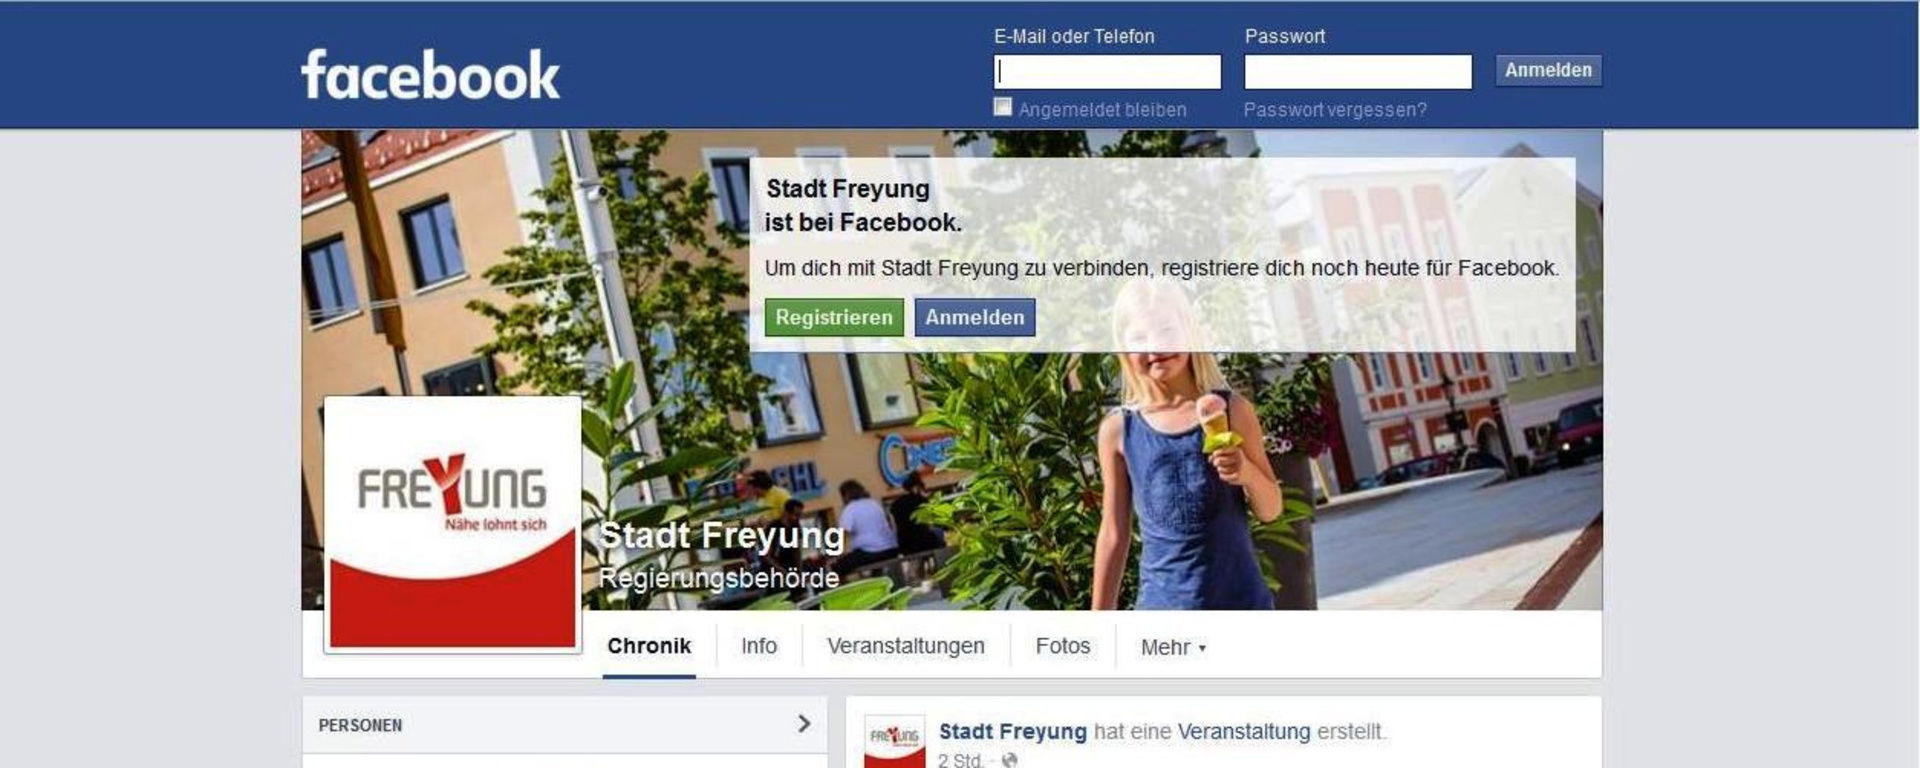 Stadt Freyung Facebook Google+ youtube flickr